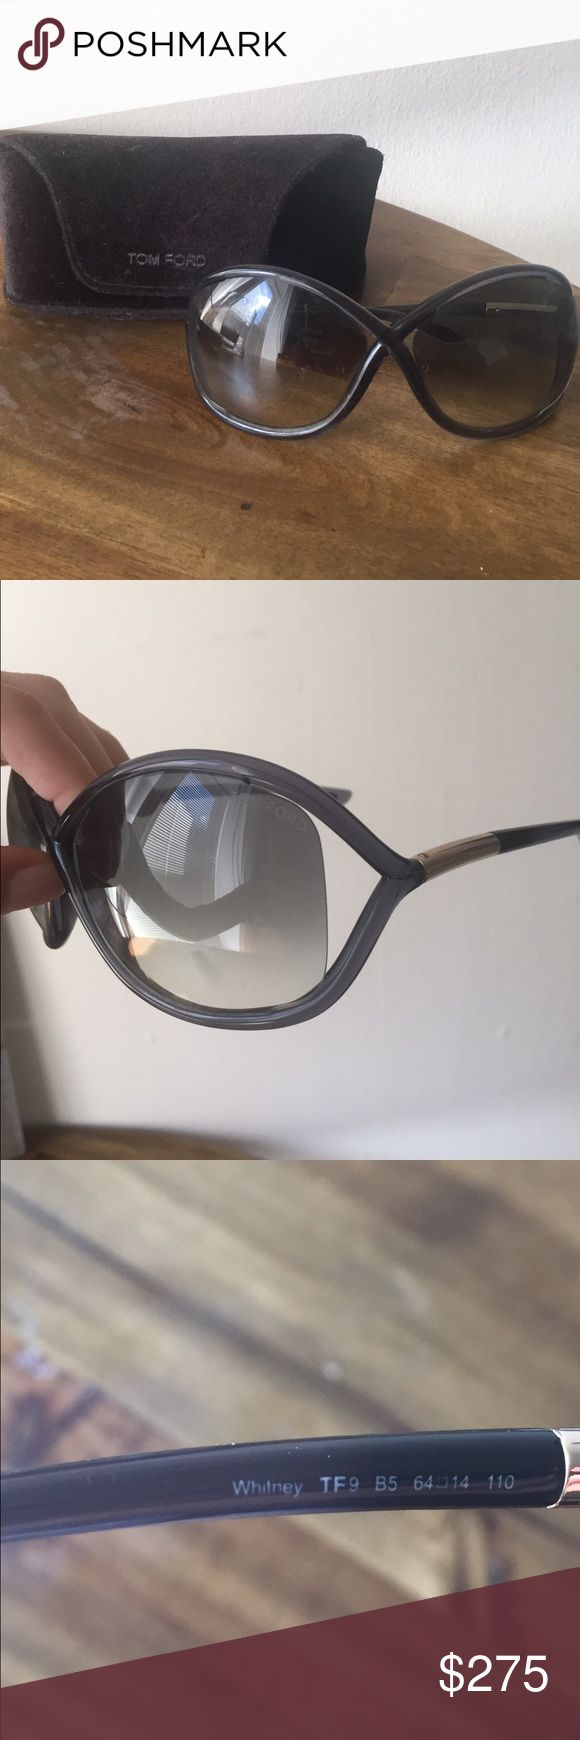 Tom Ford 'Whitney' oversized sunglasses with case Tom Ford Whitney sunglasses in grey, case included. No scratches, these have only been worn a few times! Tom Ford Accessories Sunglasses